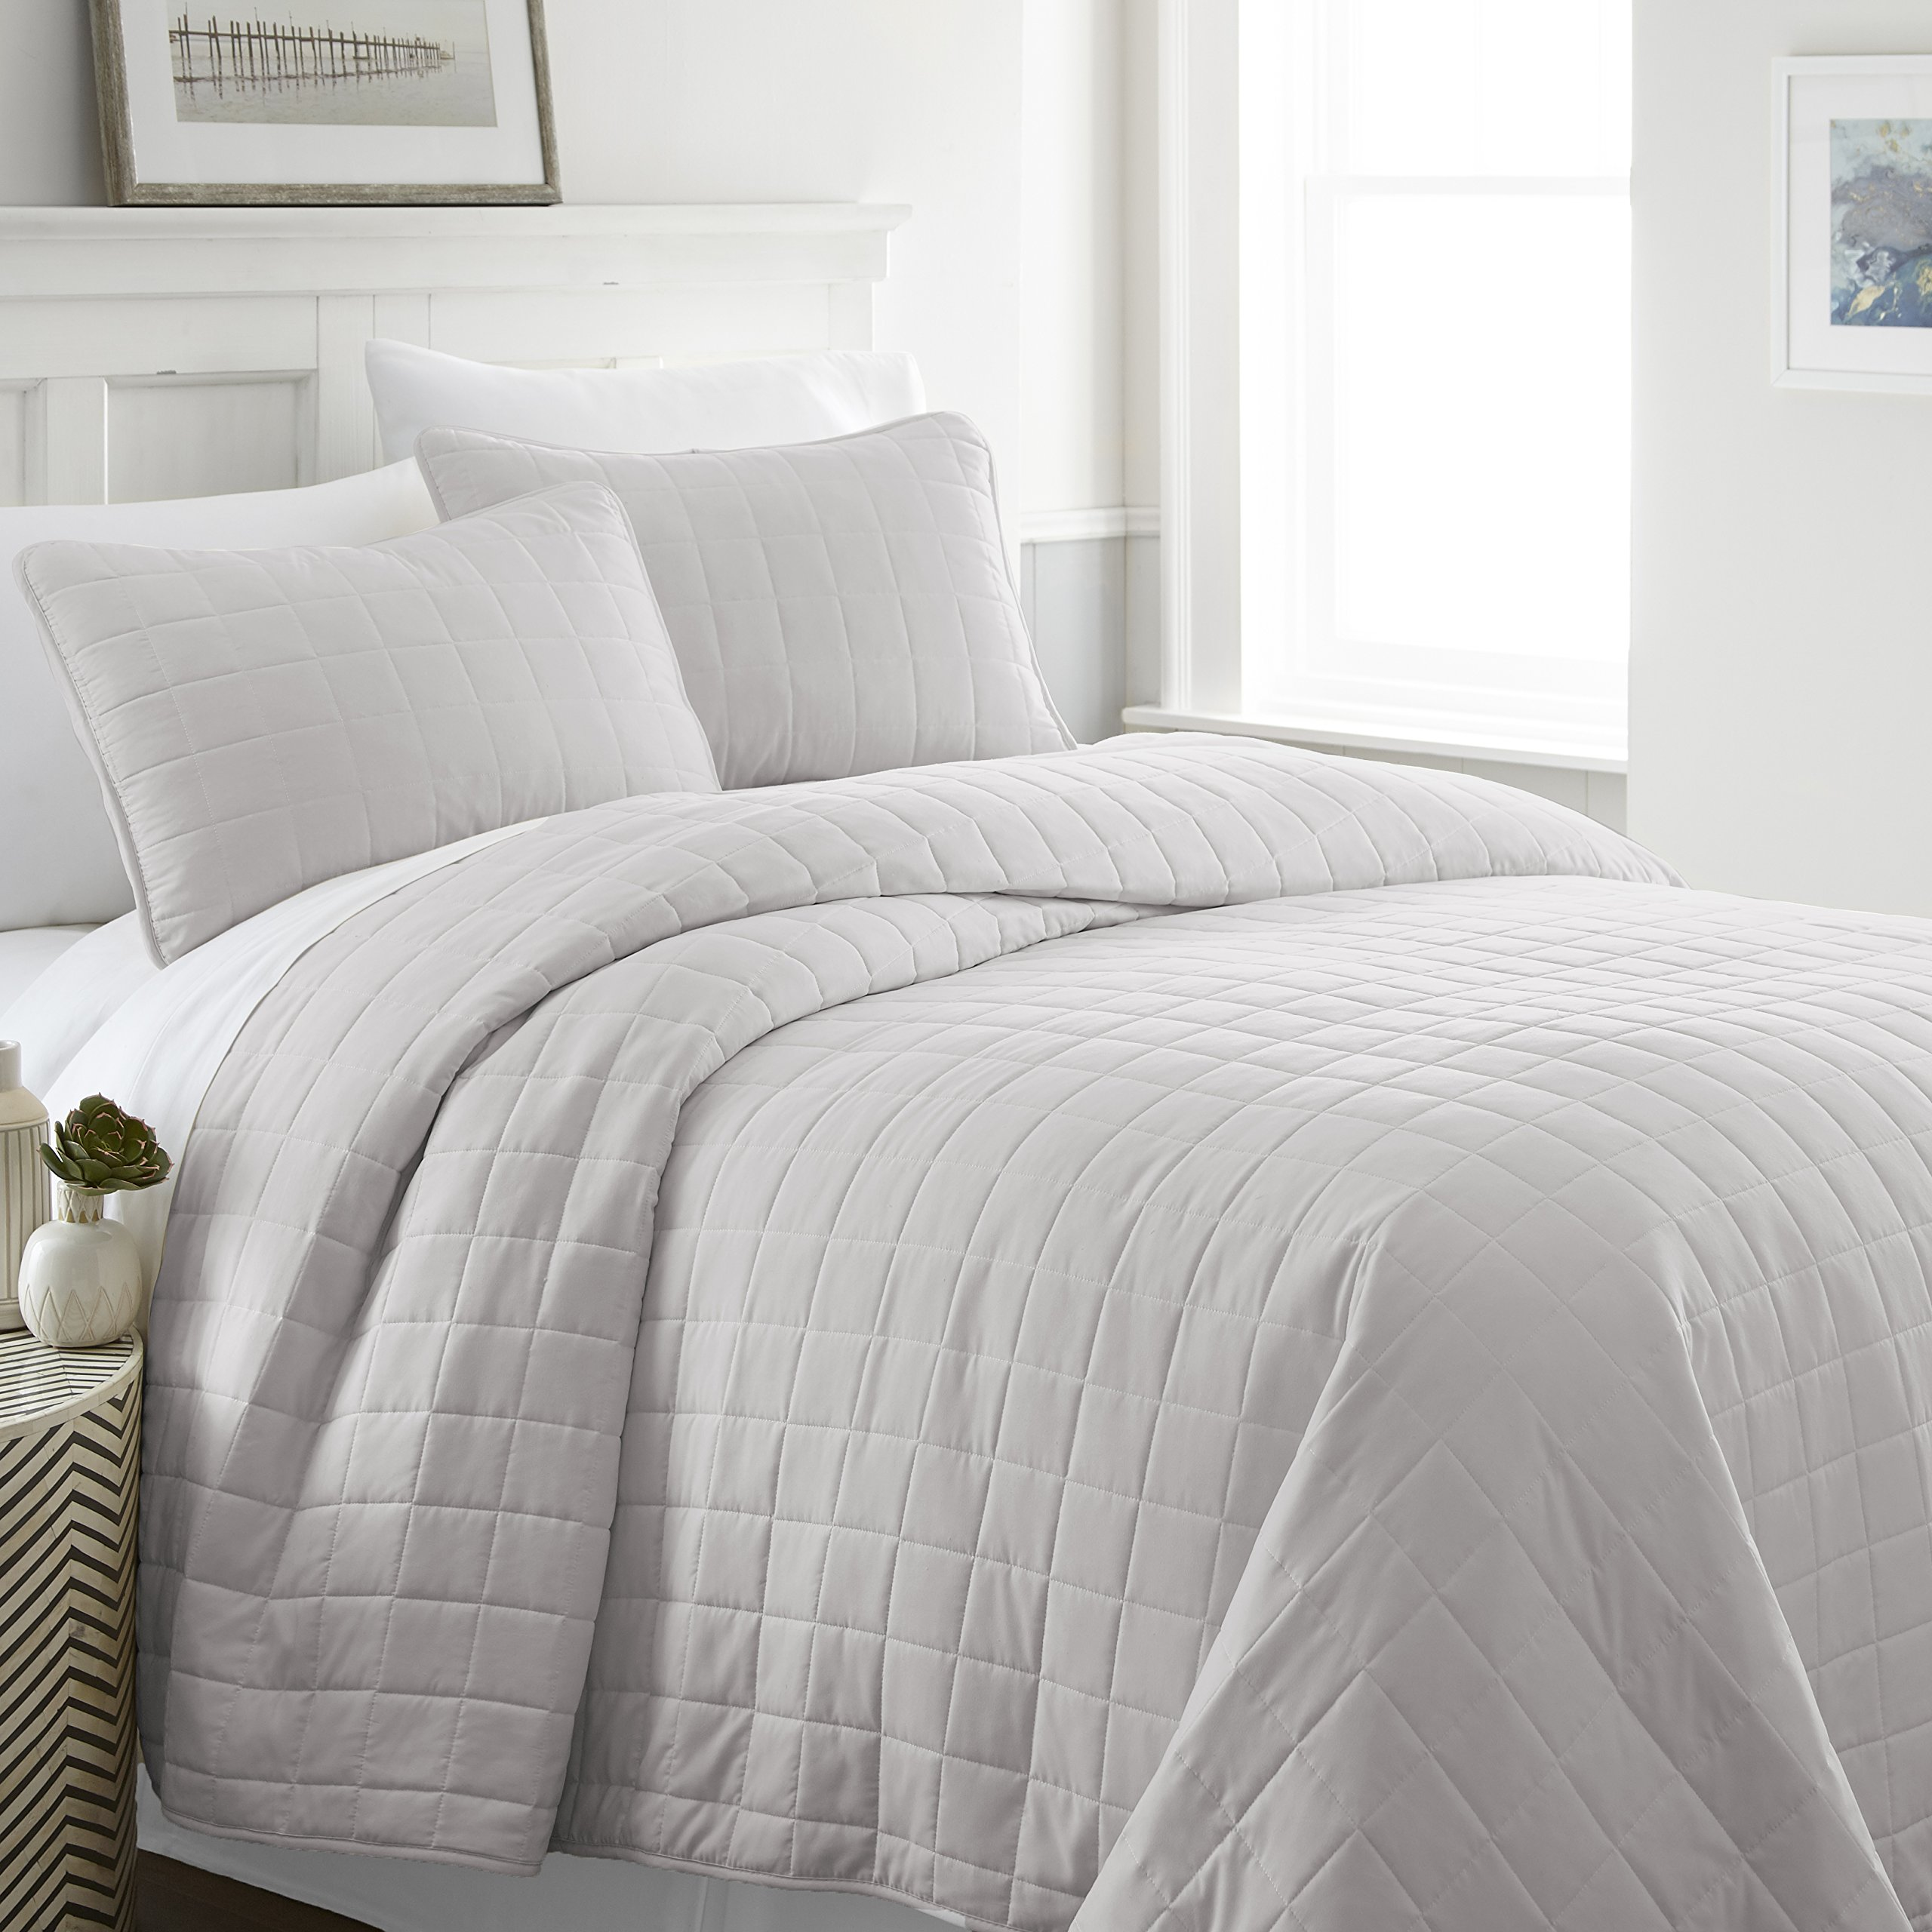 ienjy Home Square Patterned Quilted Coverlet Set, Queen, Gray